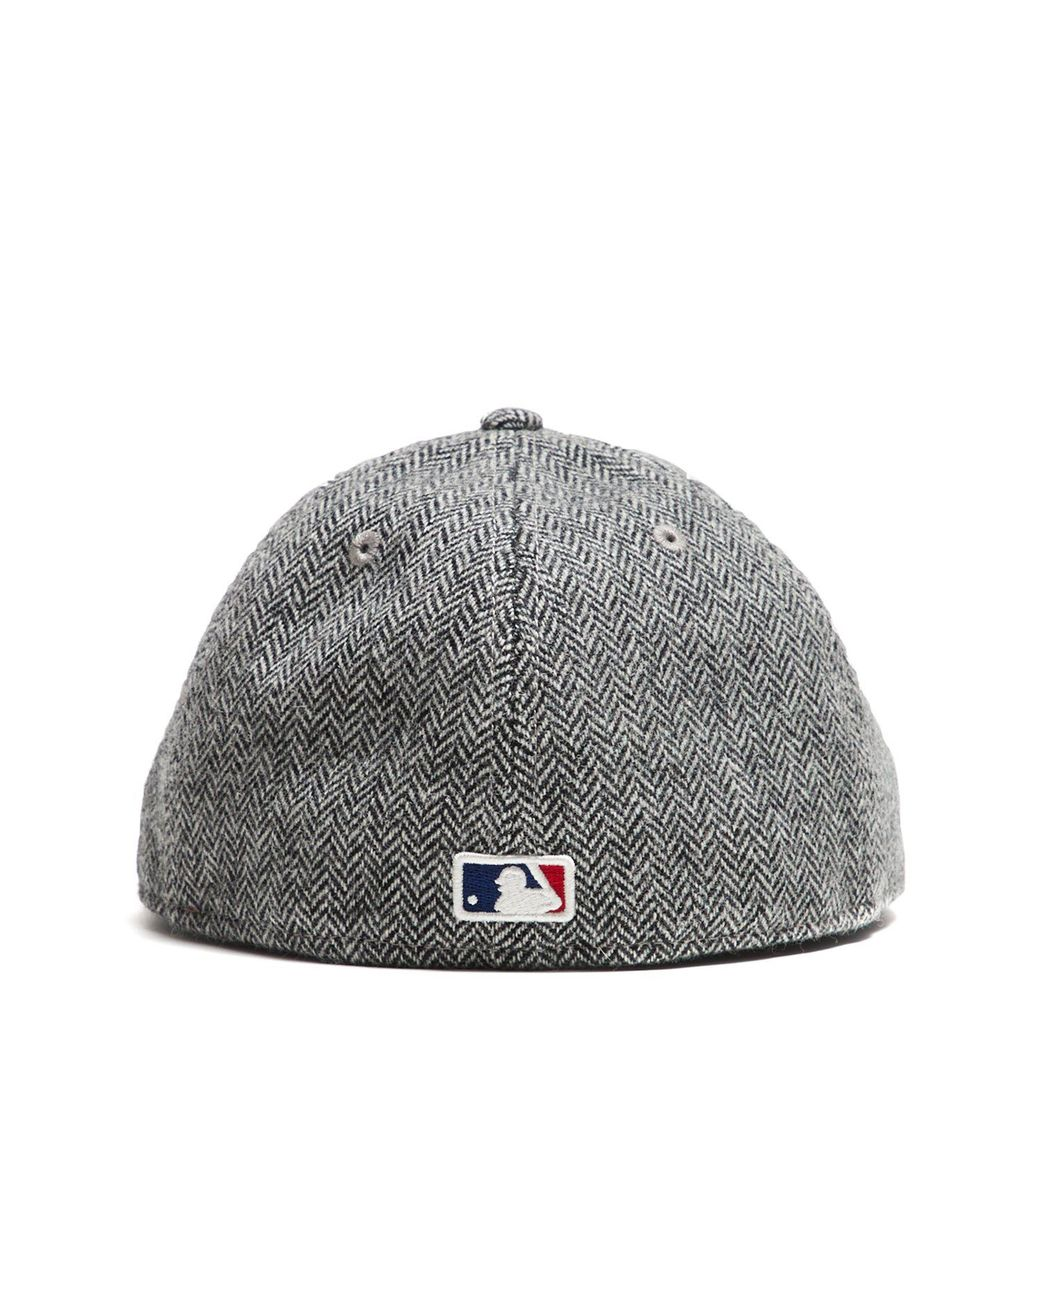 new style 65d0f 7fe19 NEW ERA HATS Exclusive New Era La Dodgers Hat In Abraham Moon Herringbone  Lambswool in Black for Men - Lyst